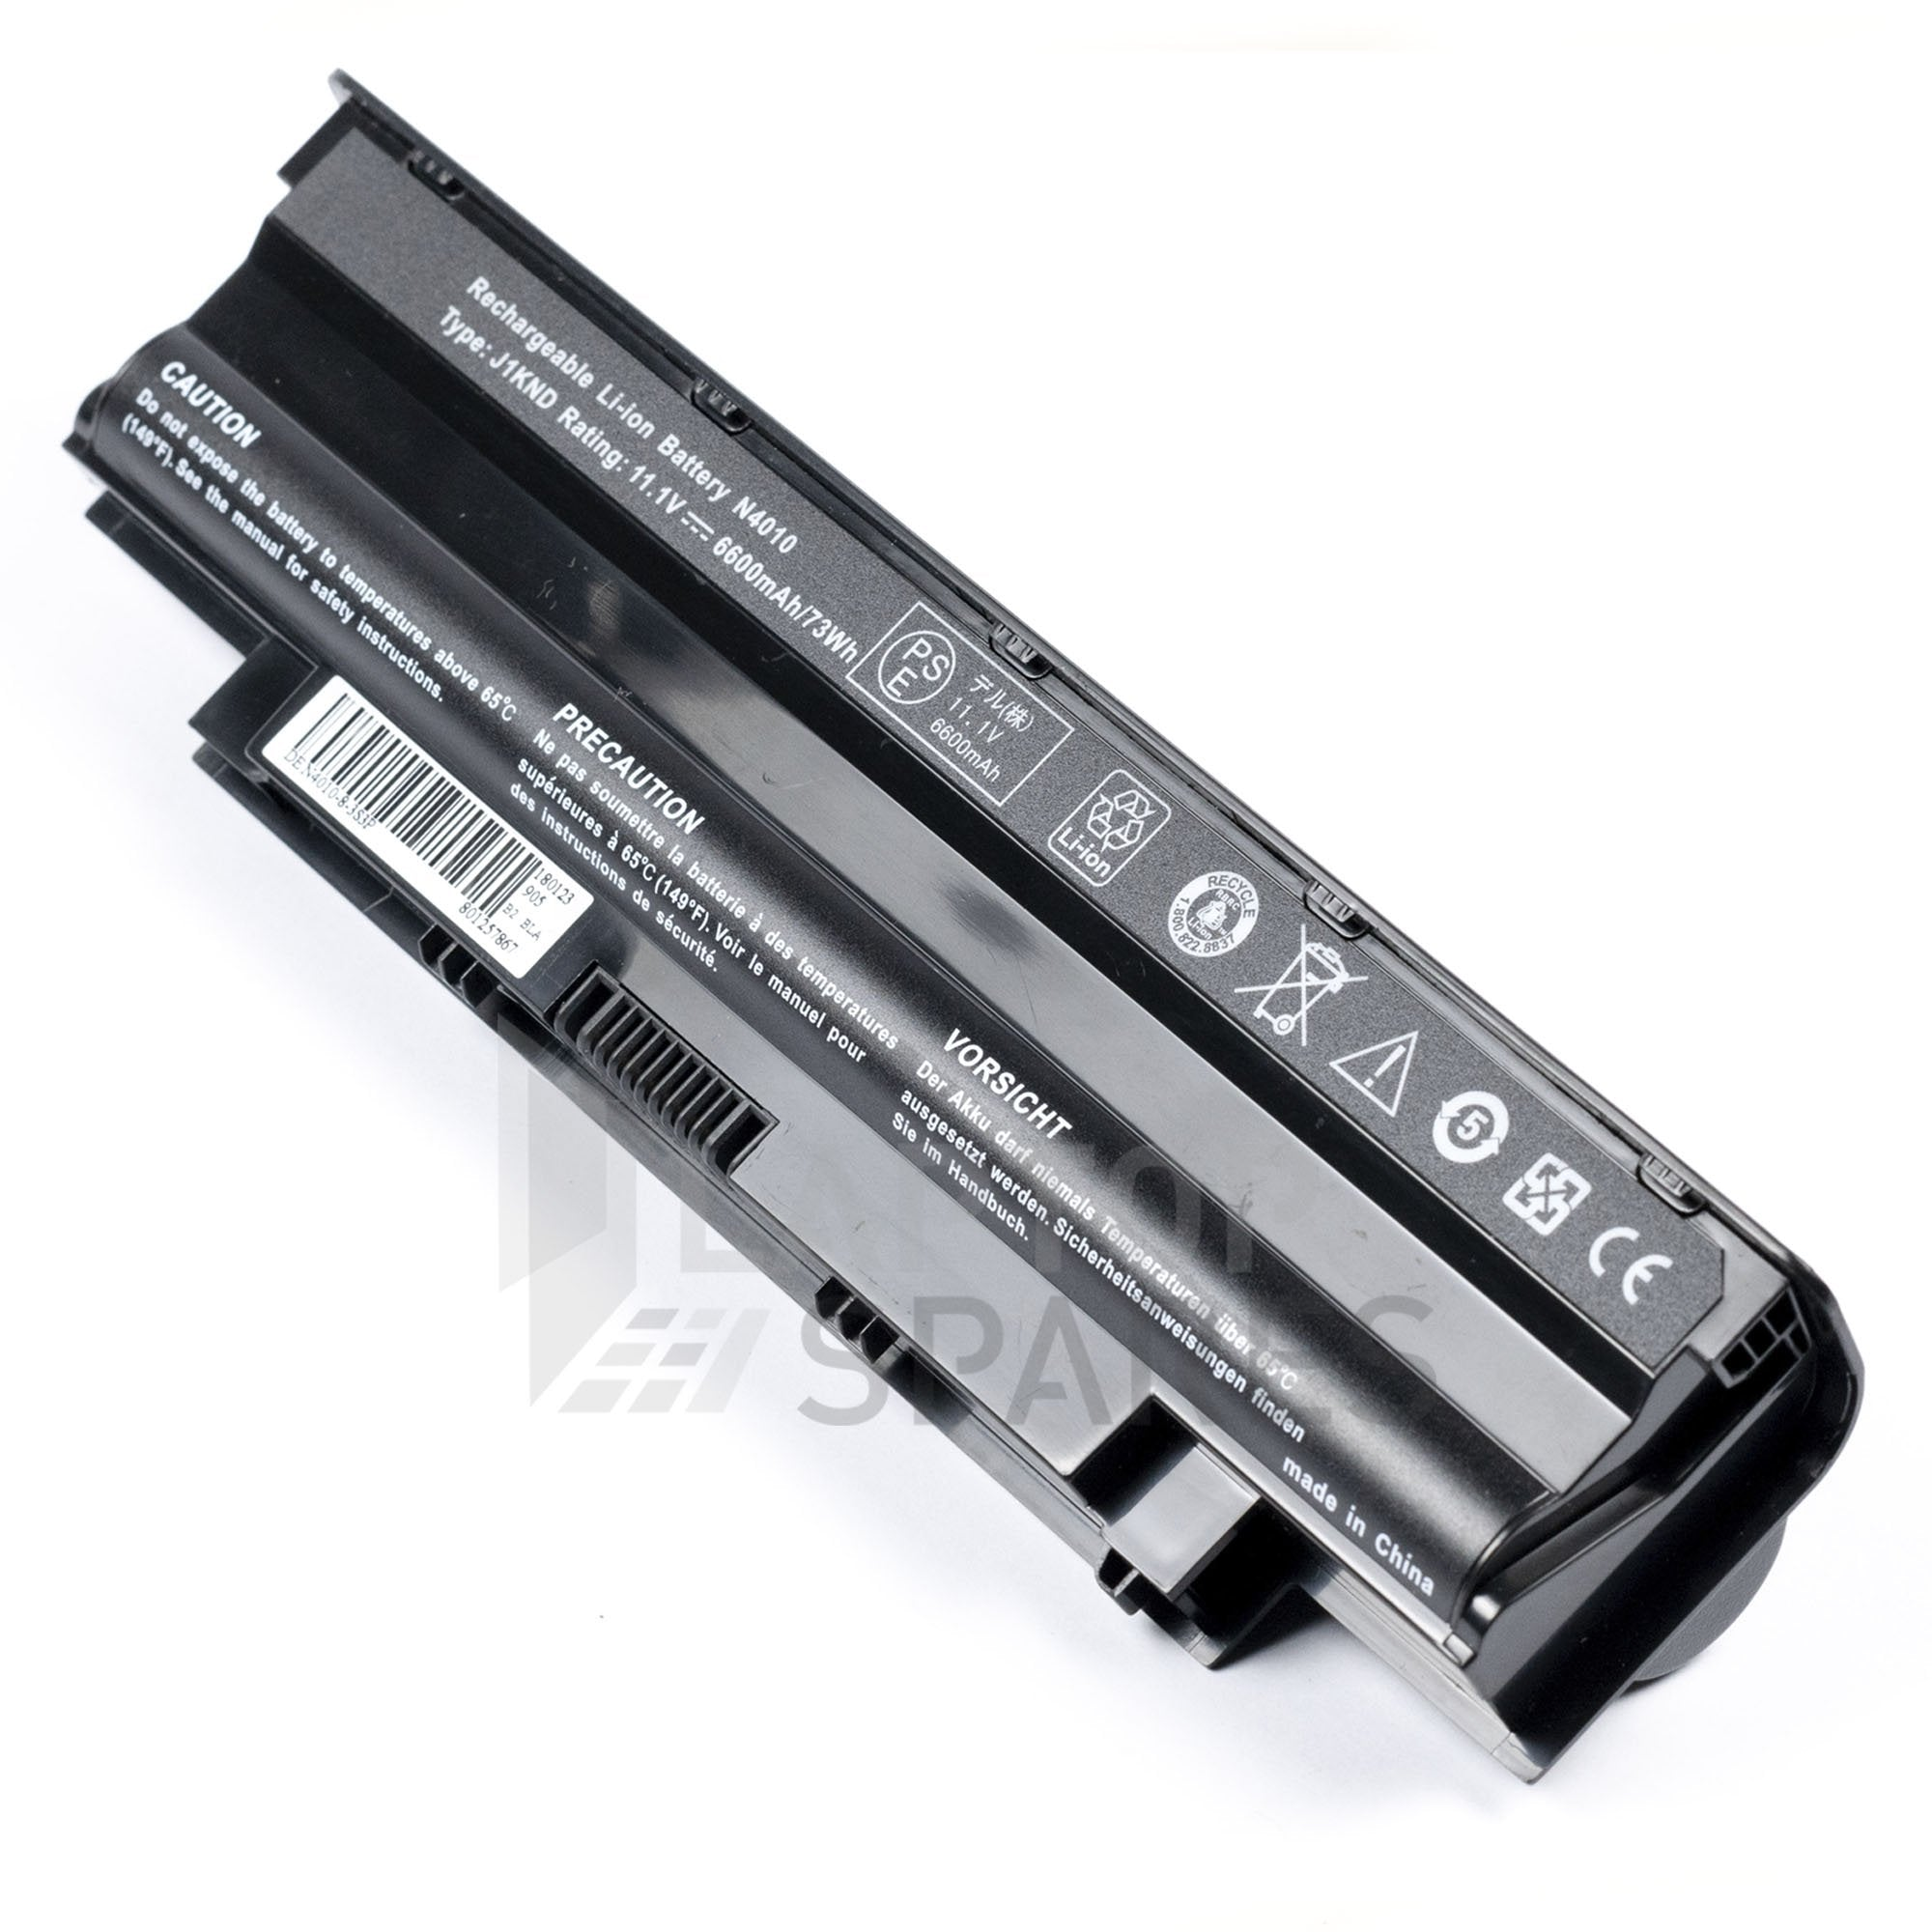 Dell Inspiron N5010D-278 6600mAh 9 Cell Battery